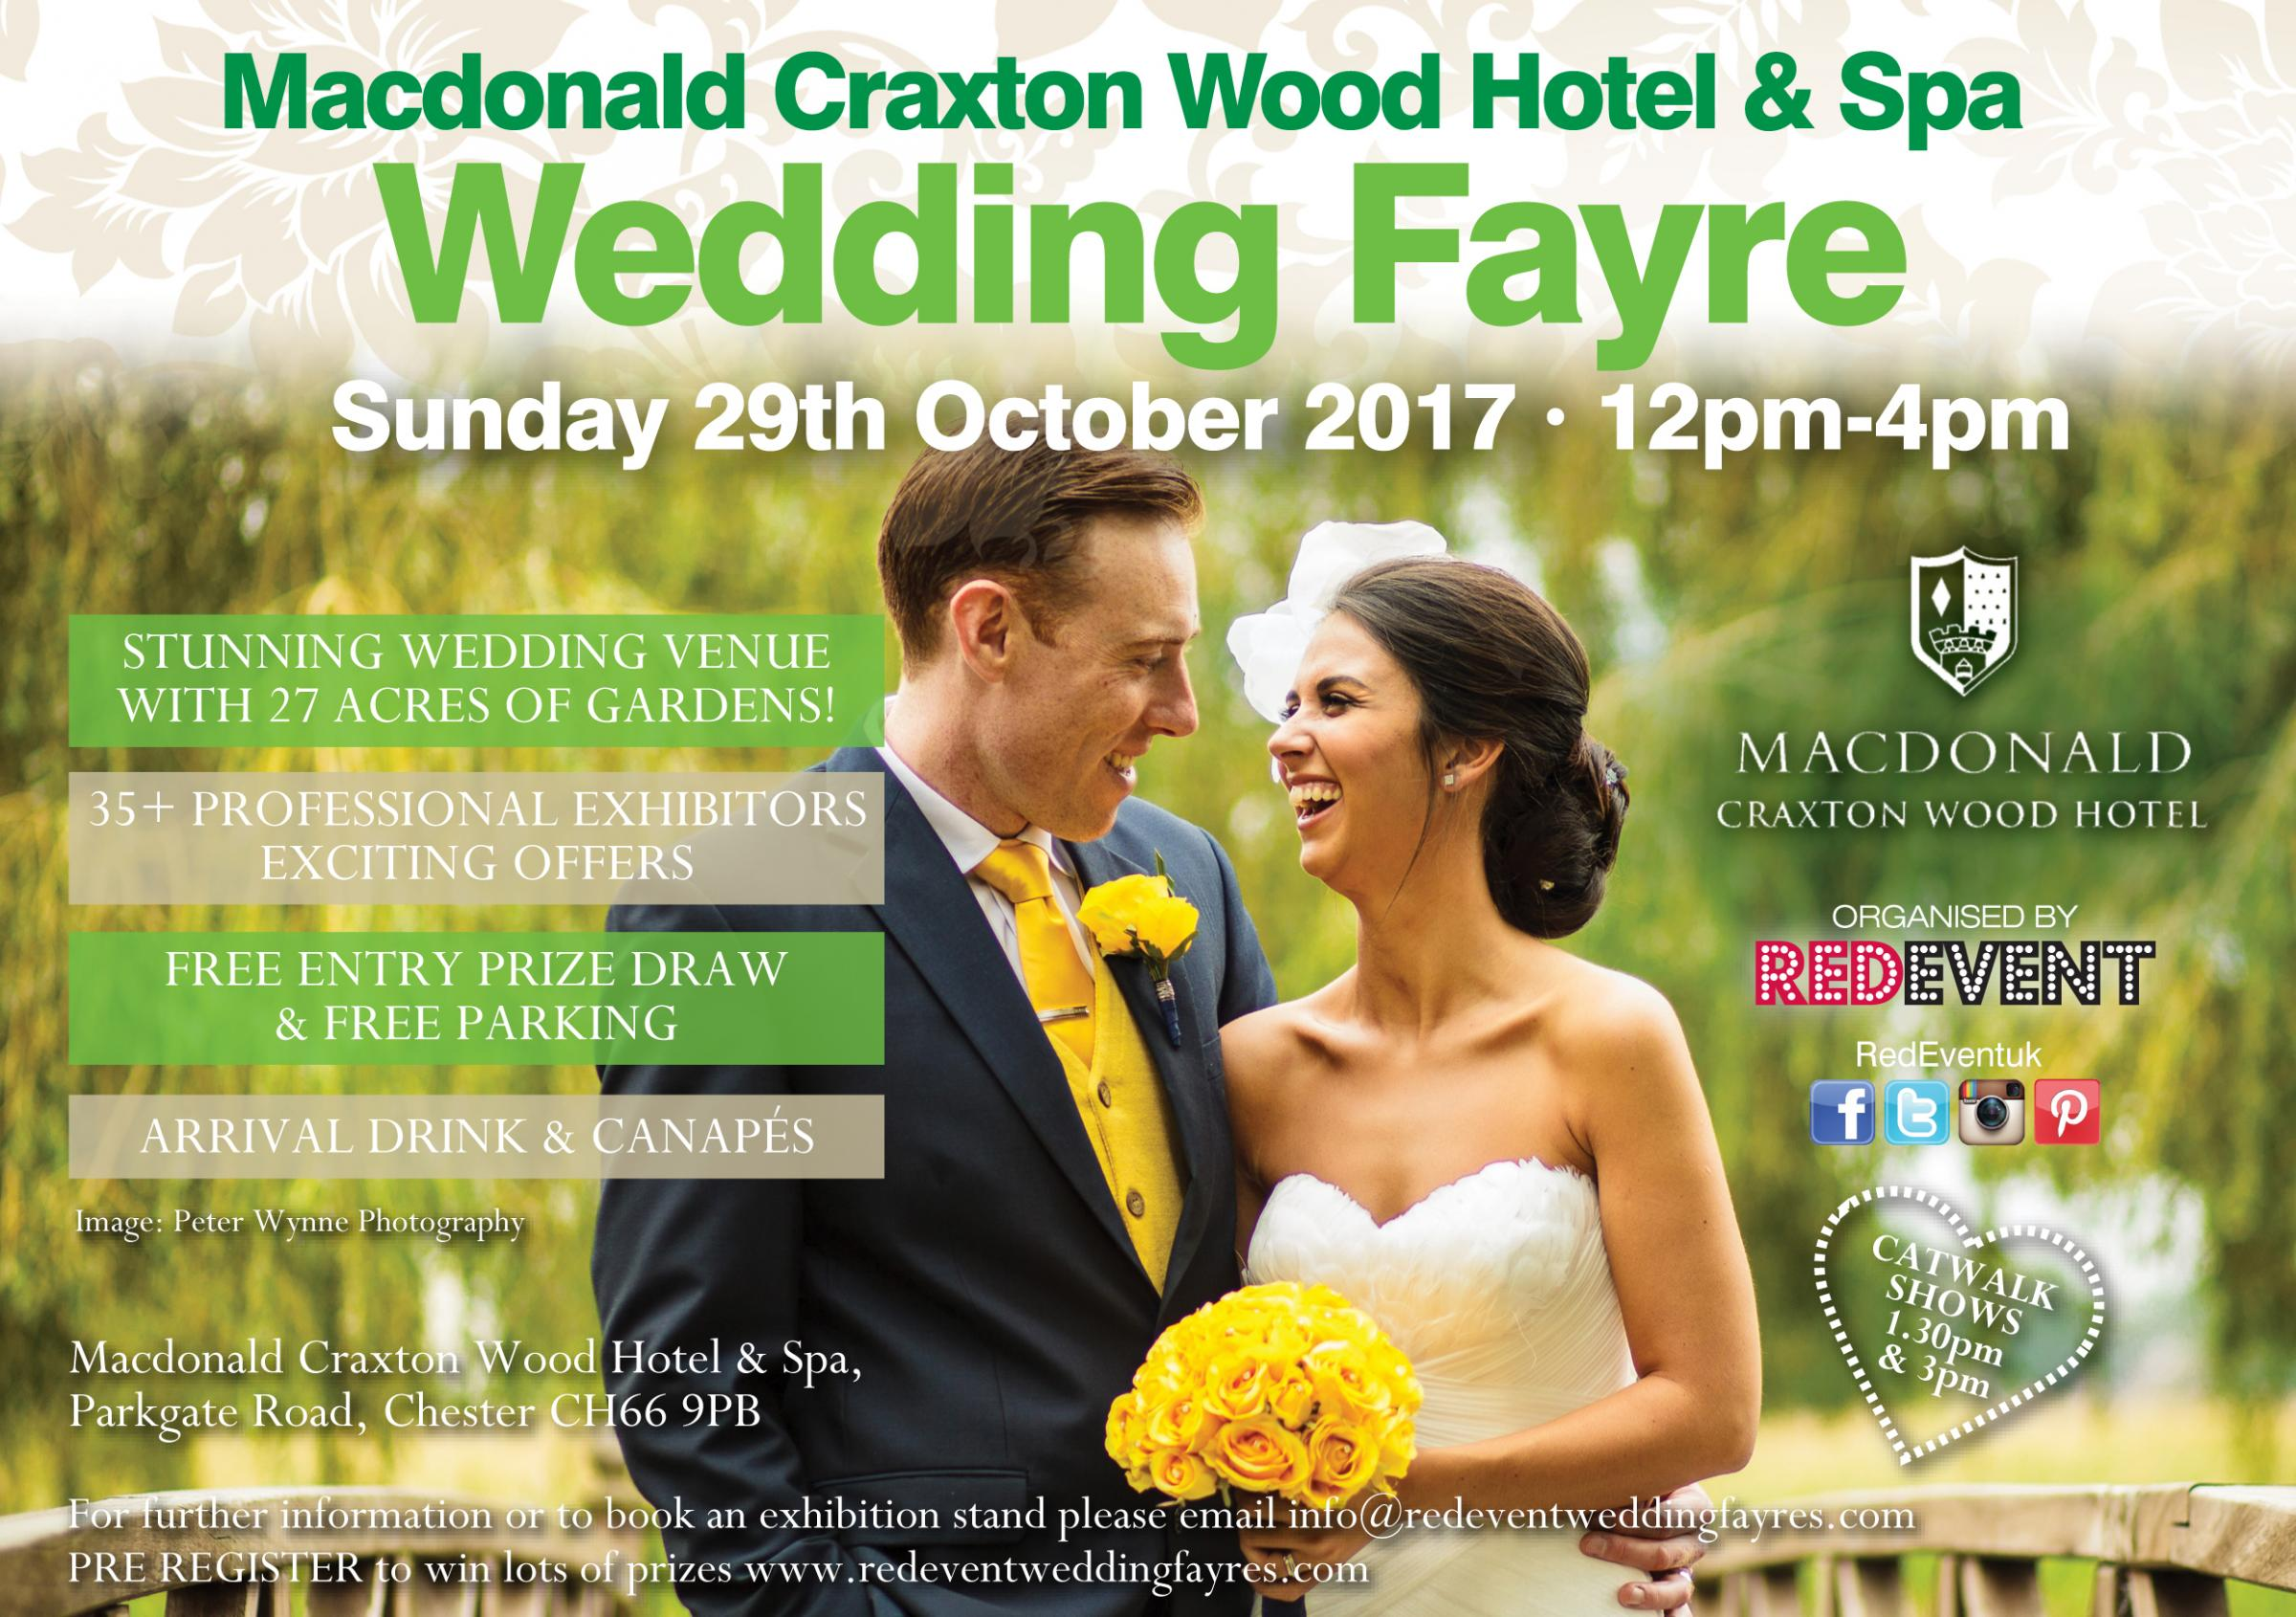 Wedding Fayre at Macdonald Craxton Wood Hotel & Spa